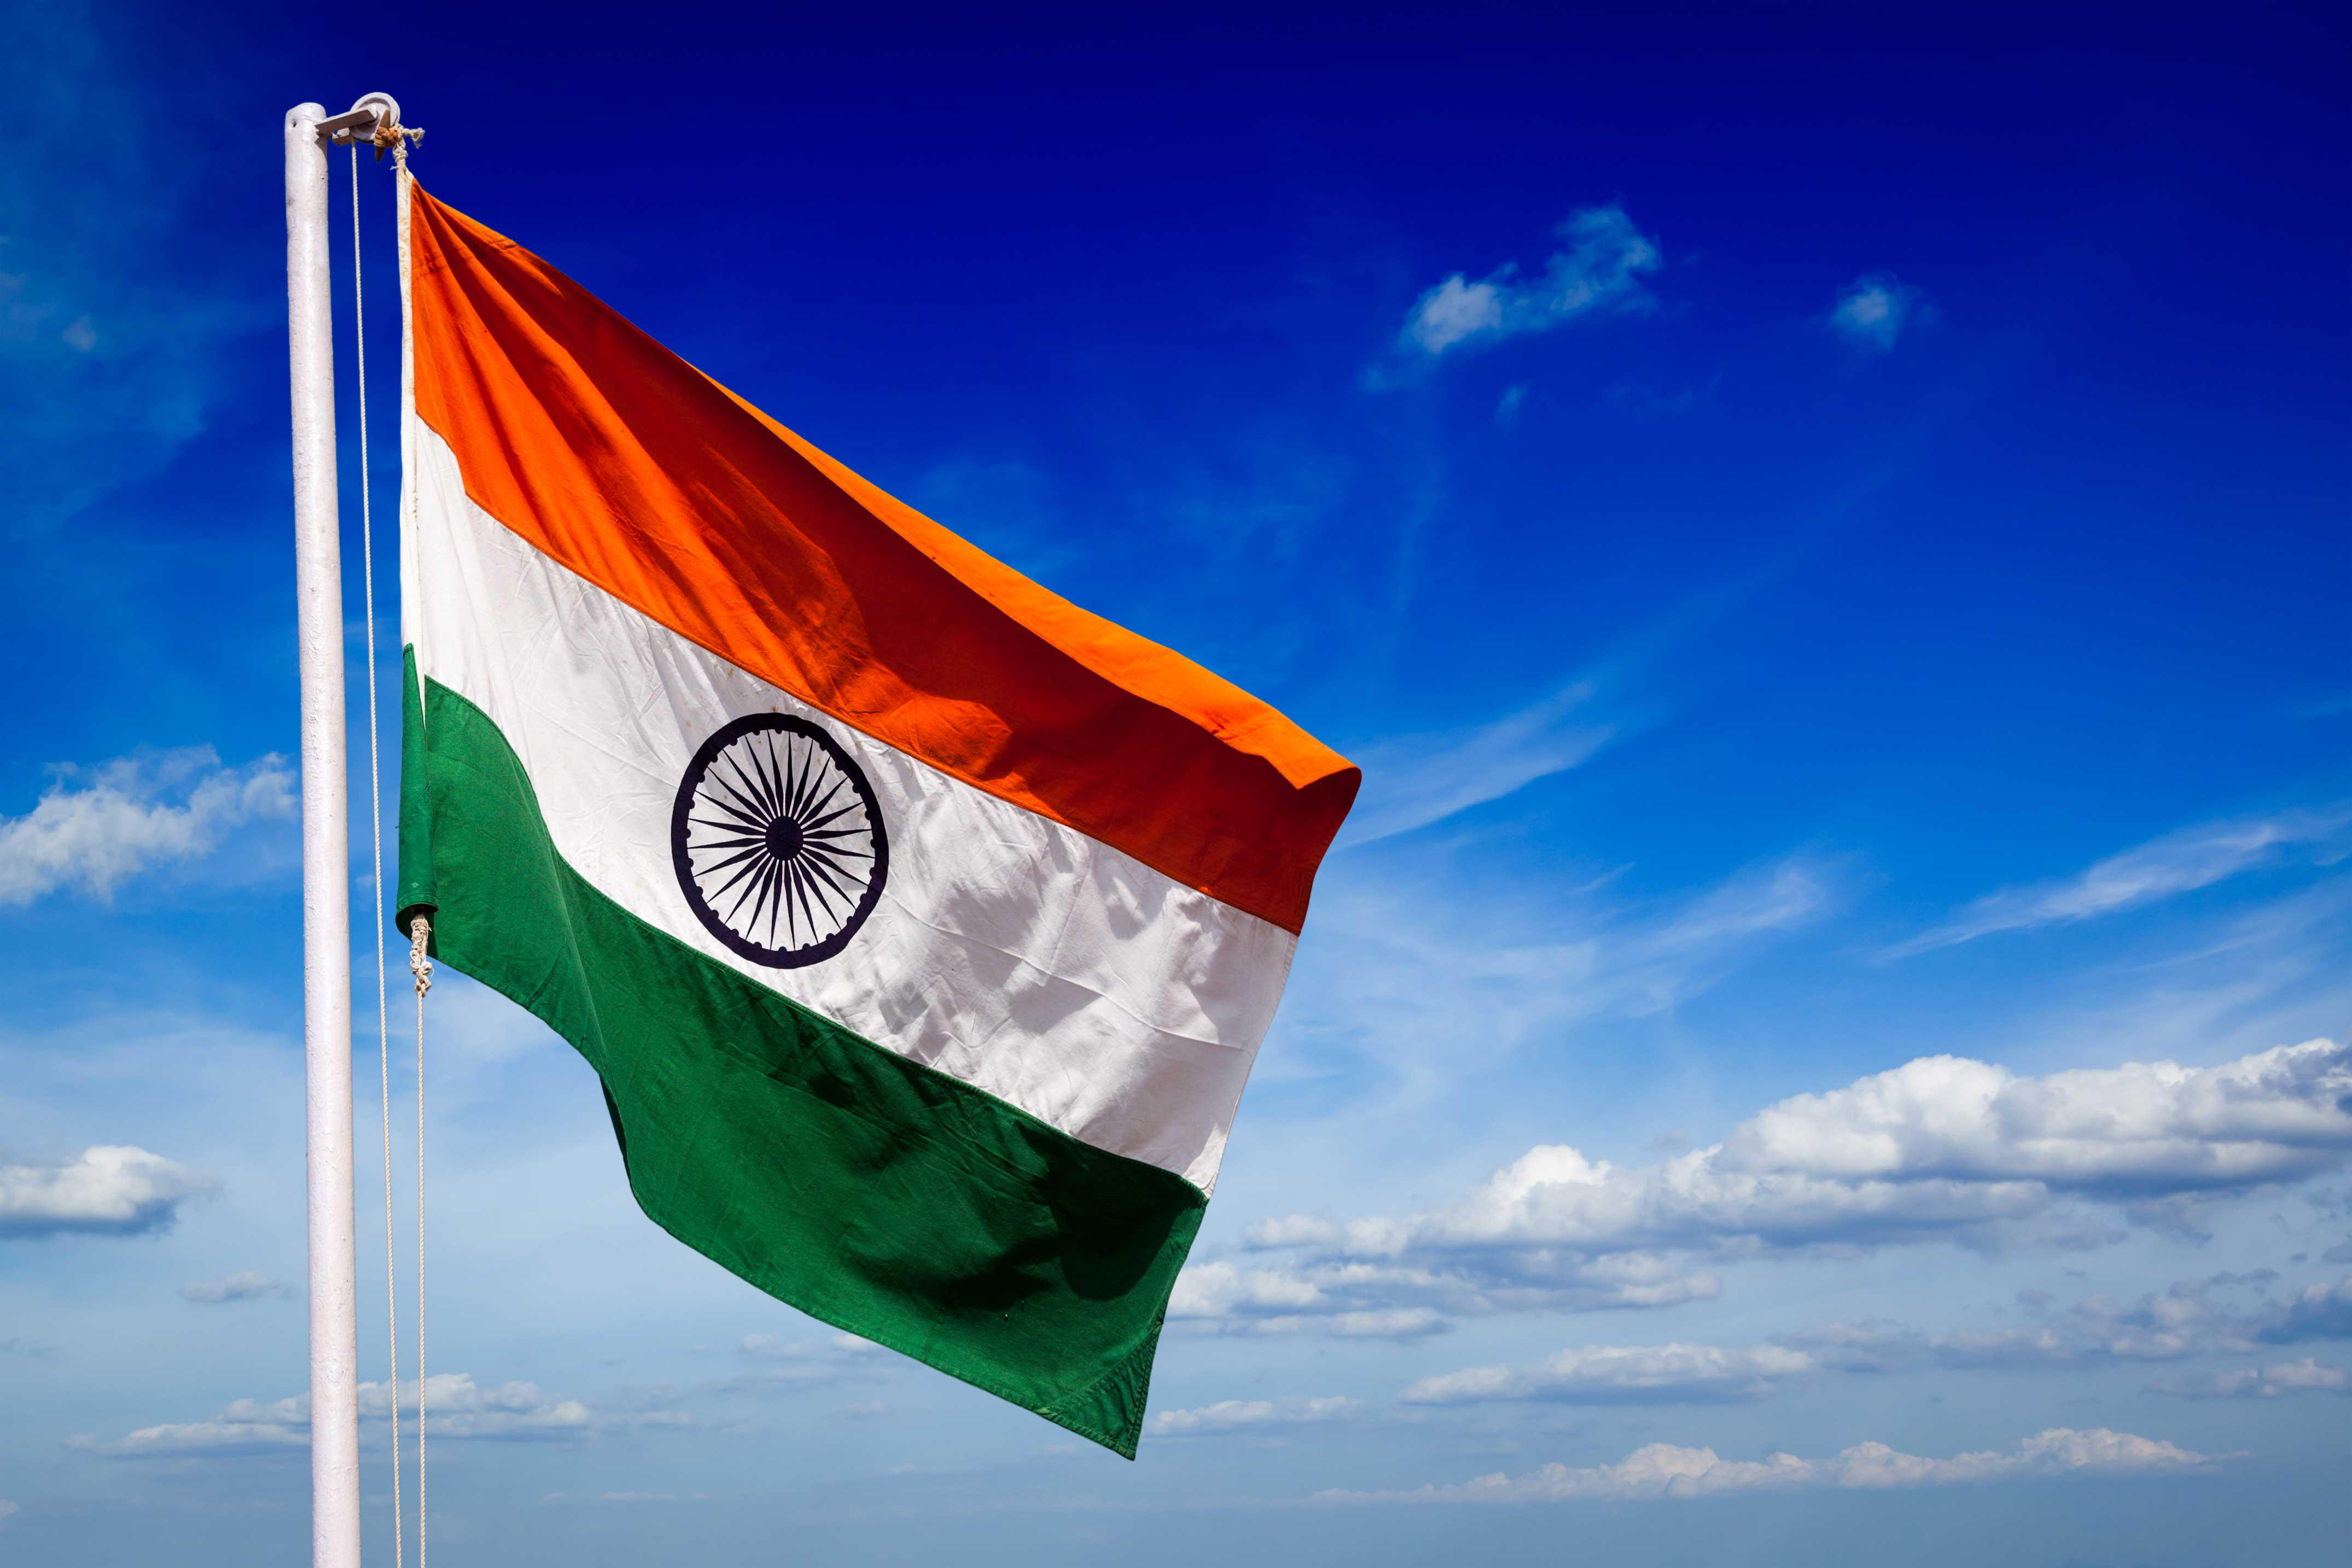 Tiranga HD Wallpaper for Desktop Free Download